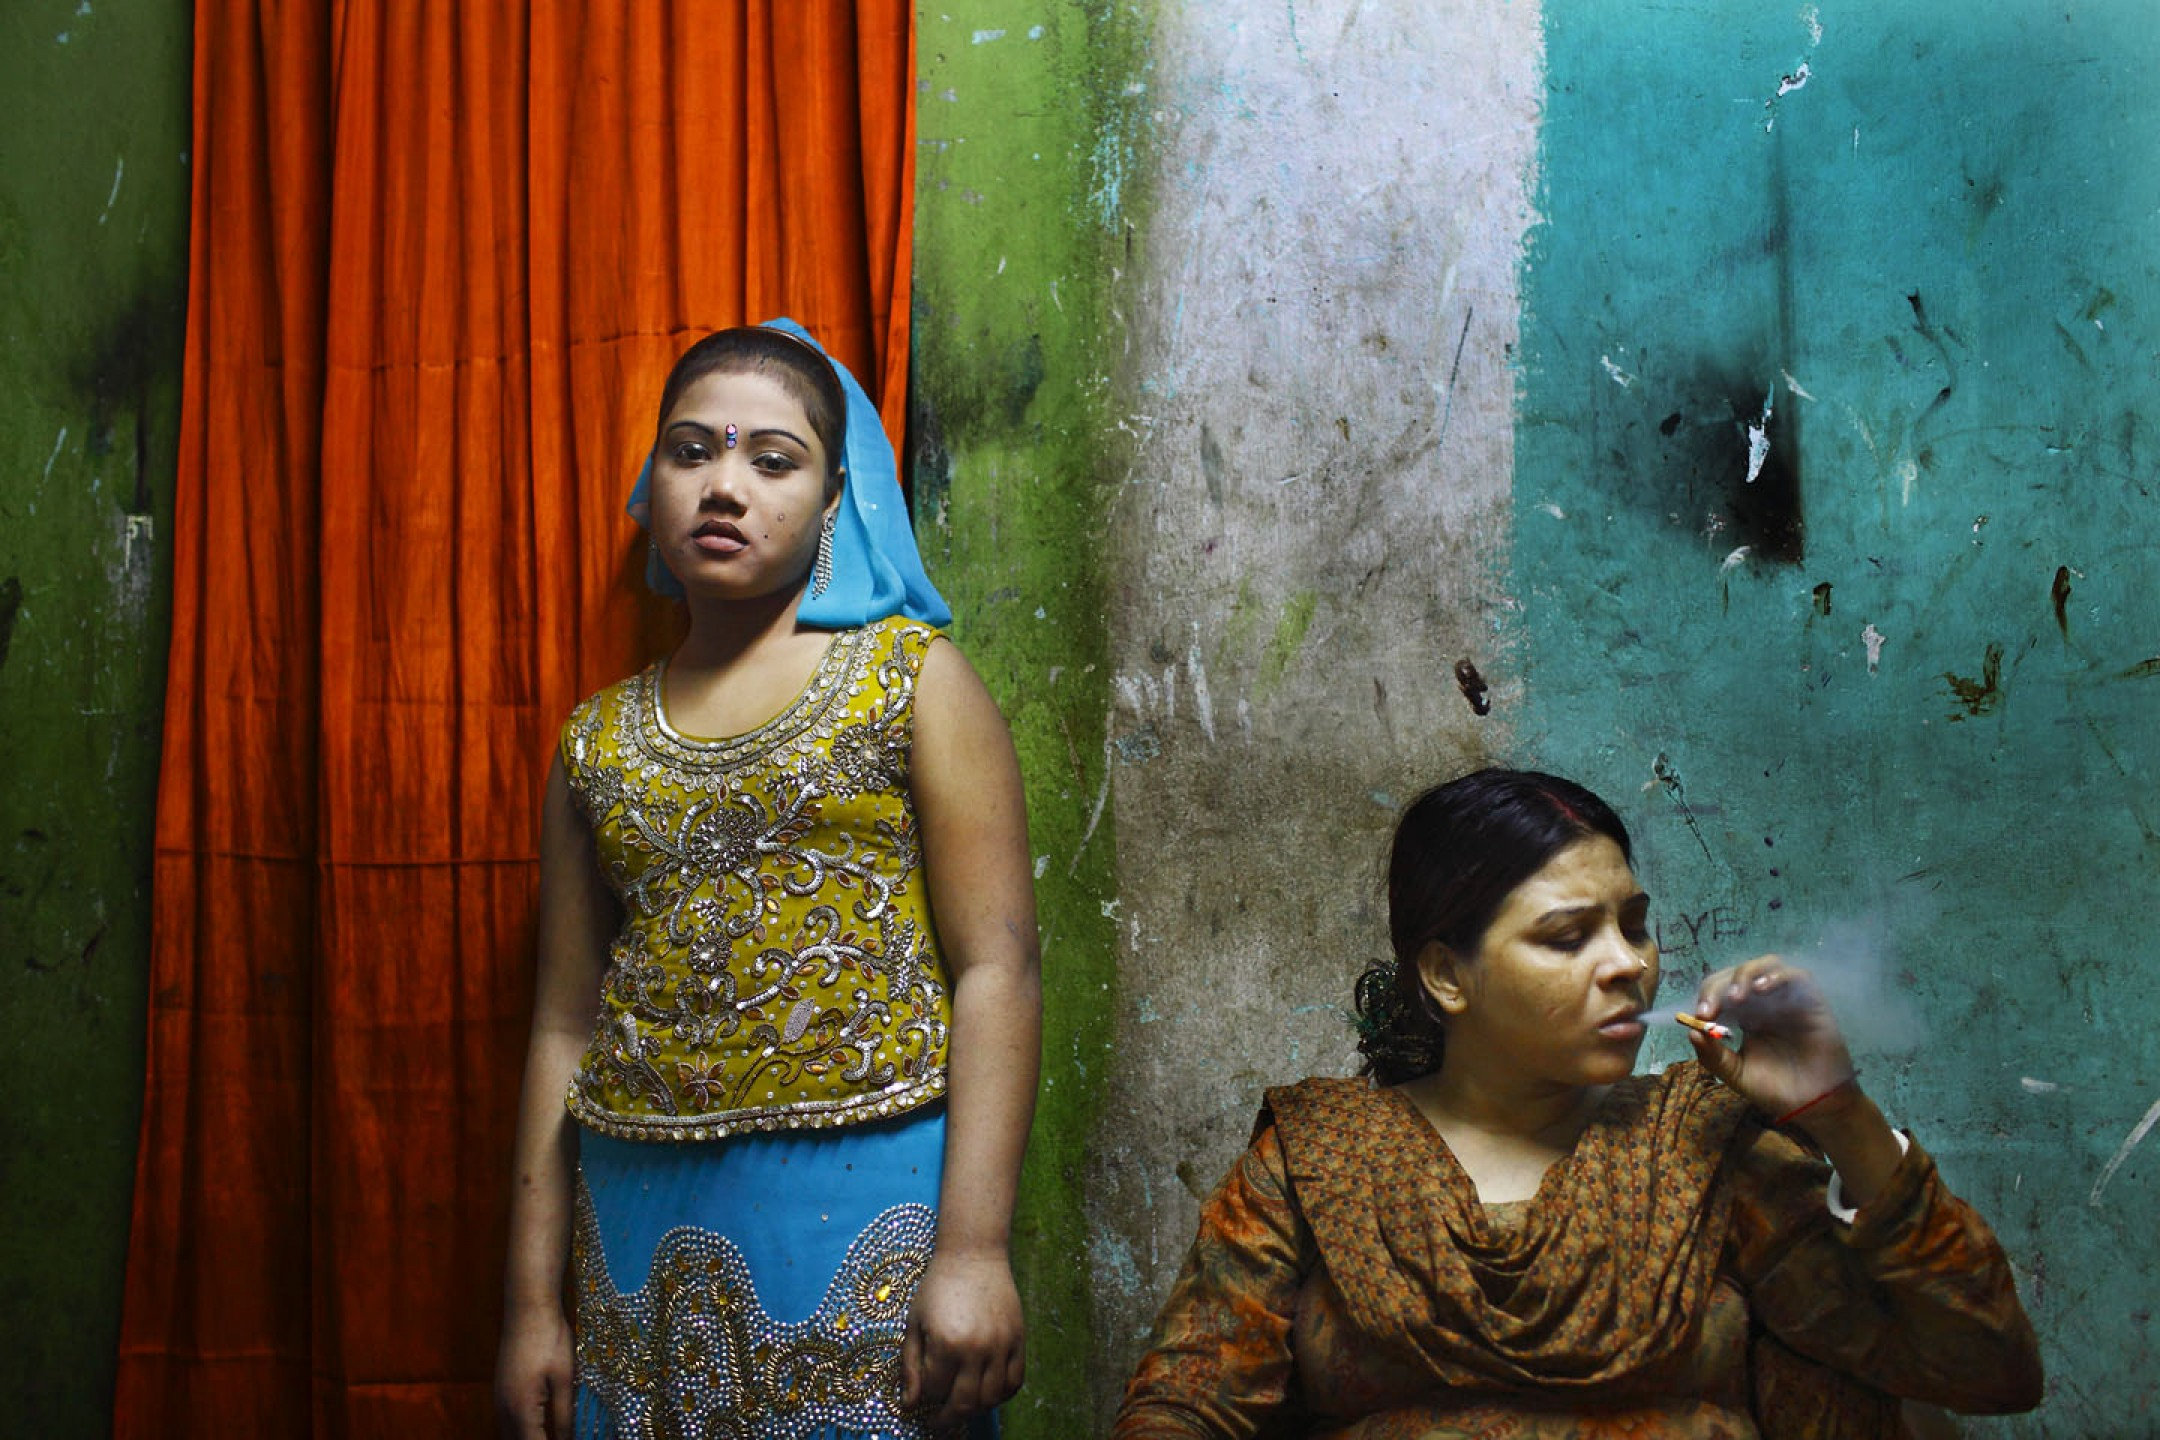 Sex workers in Bangladesh